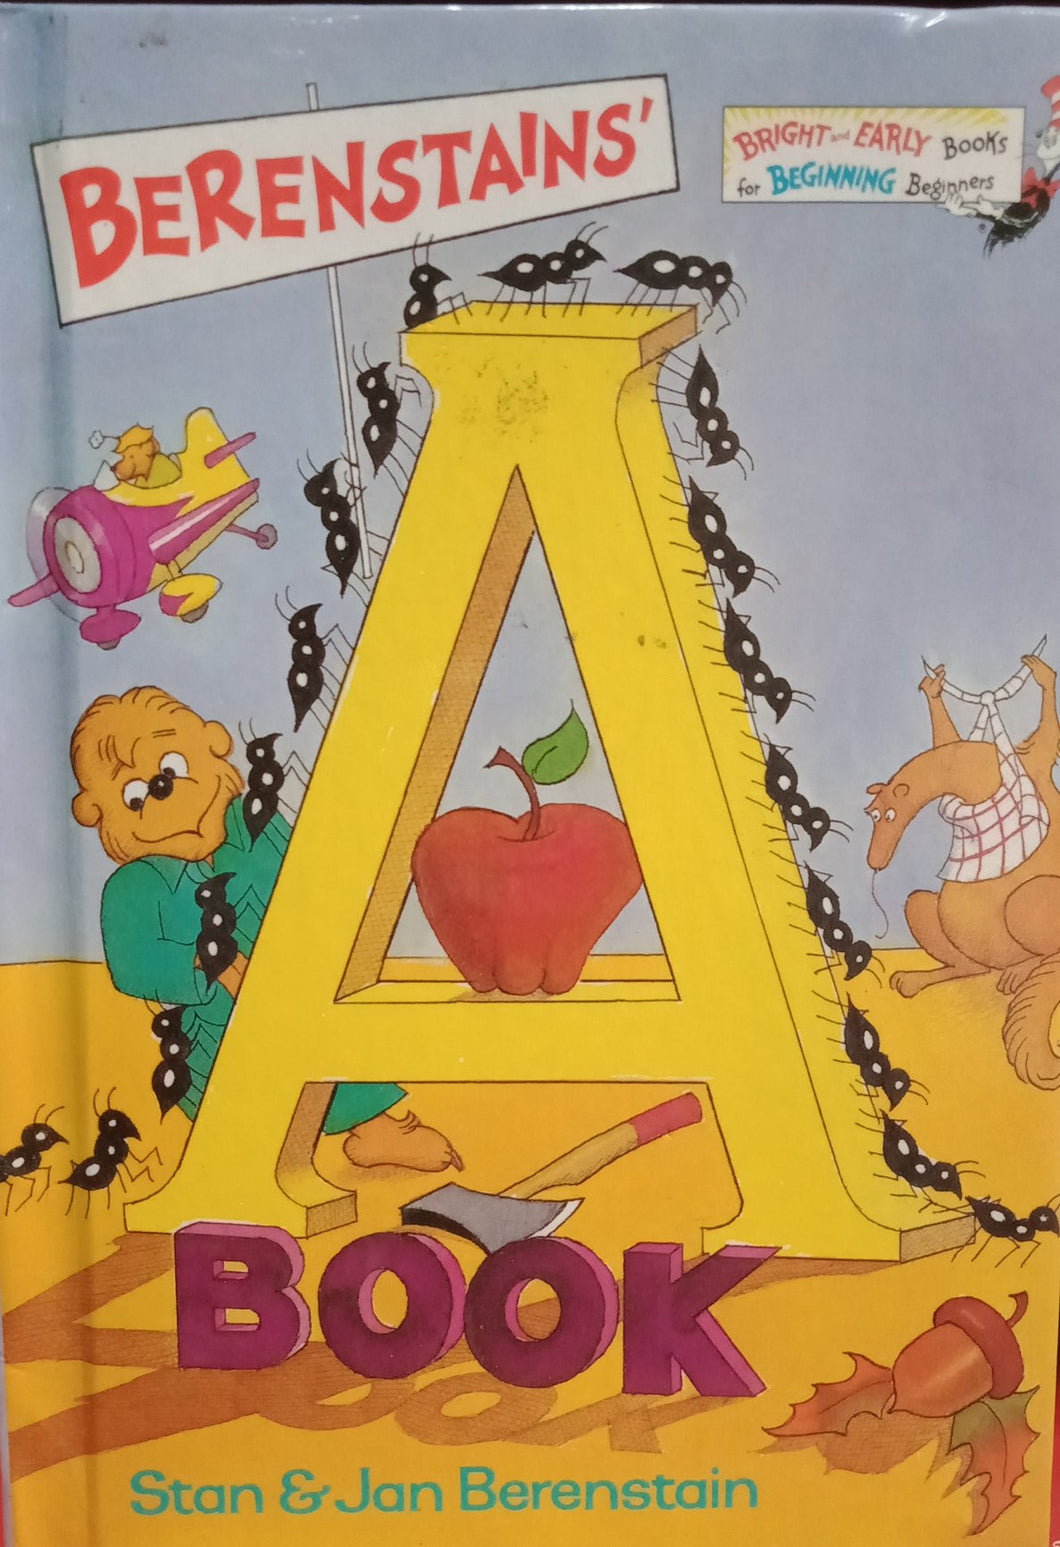 The A Book By Stan & Jan berenstain